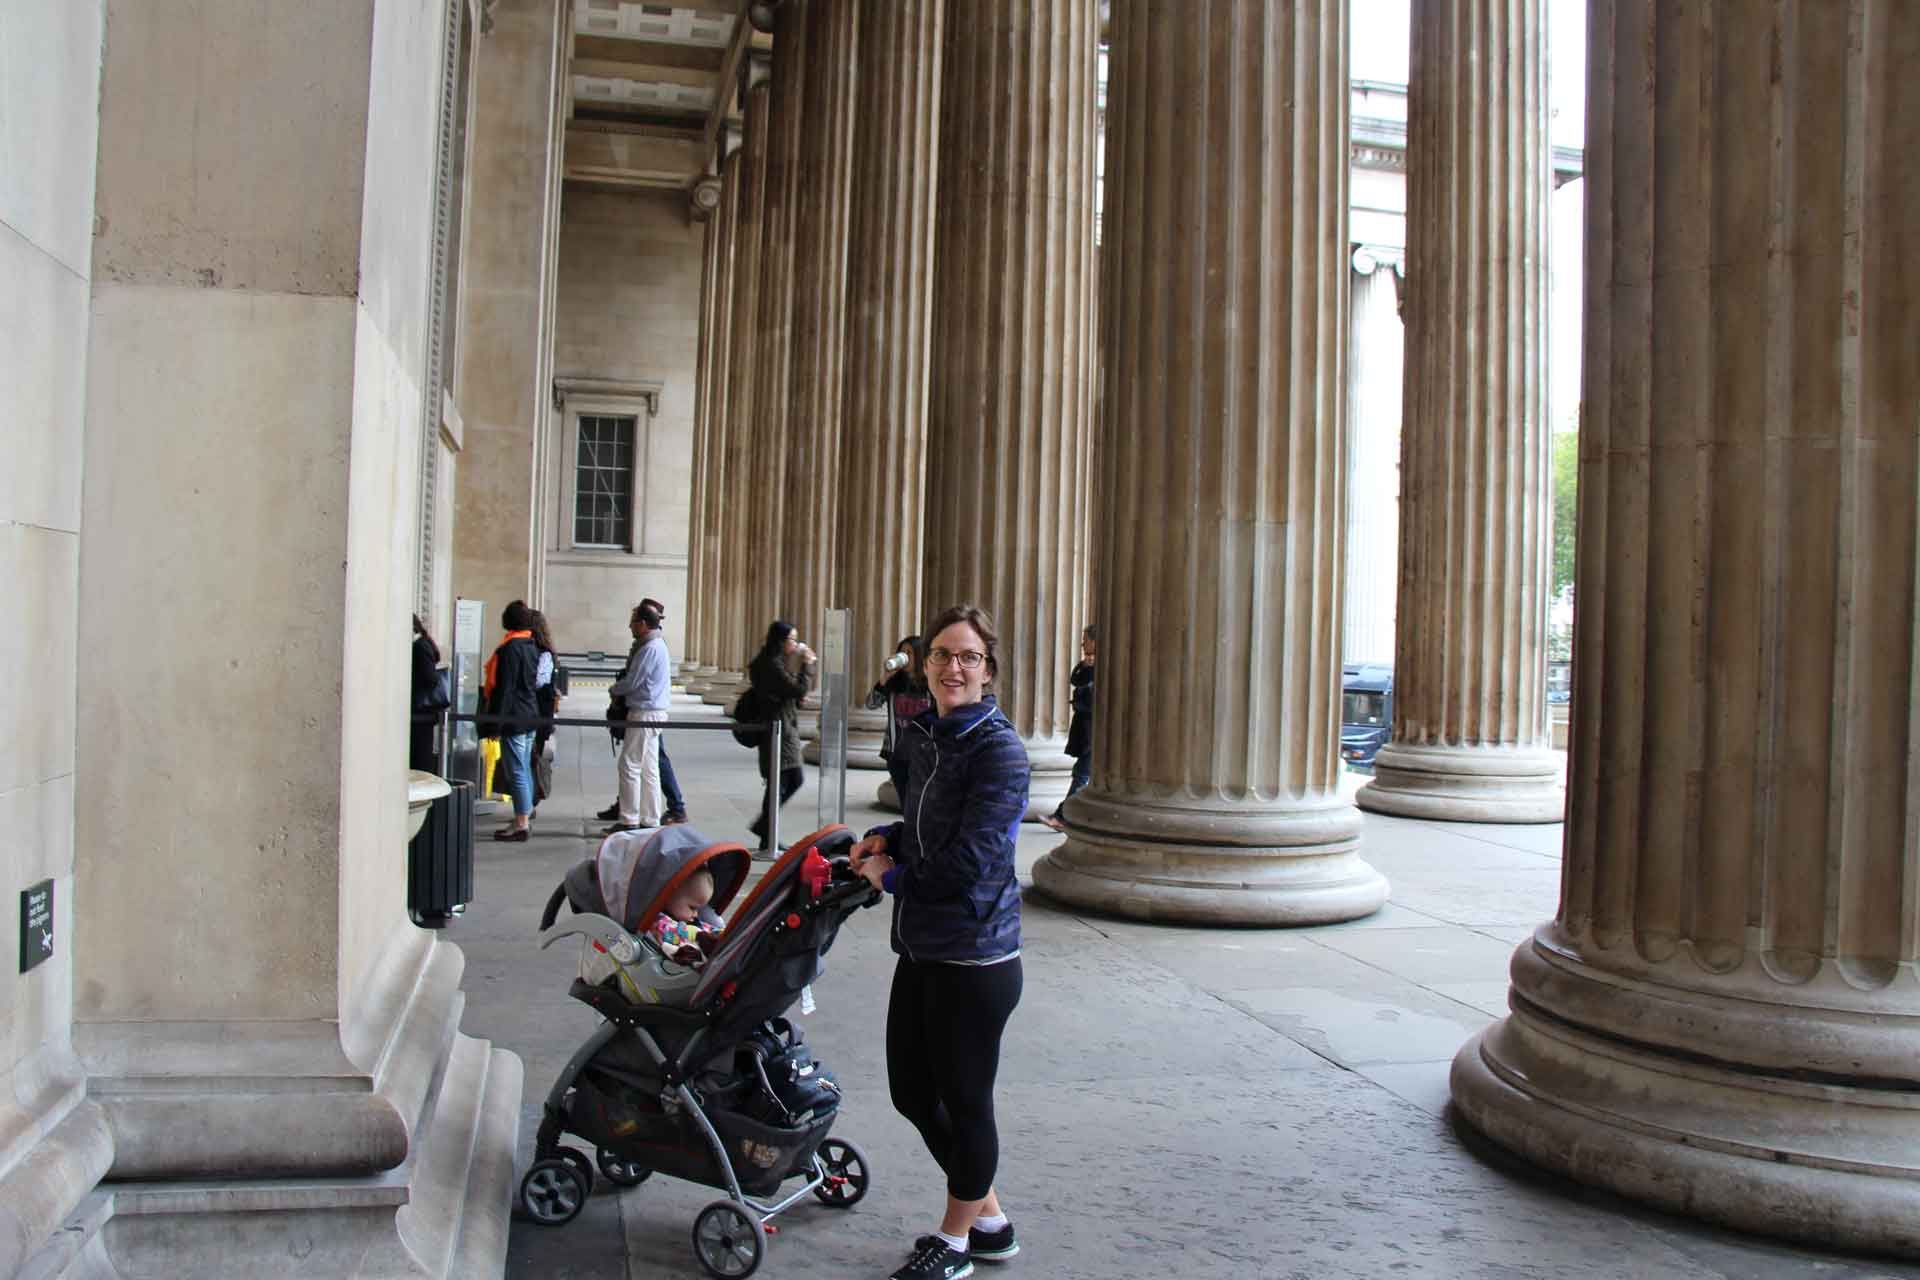 British Museum in London with a baby